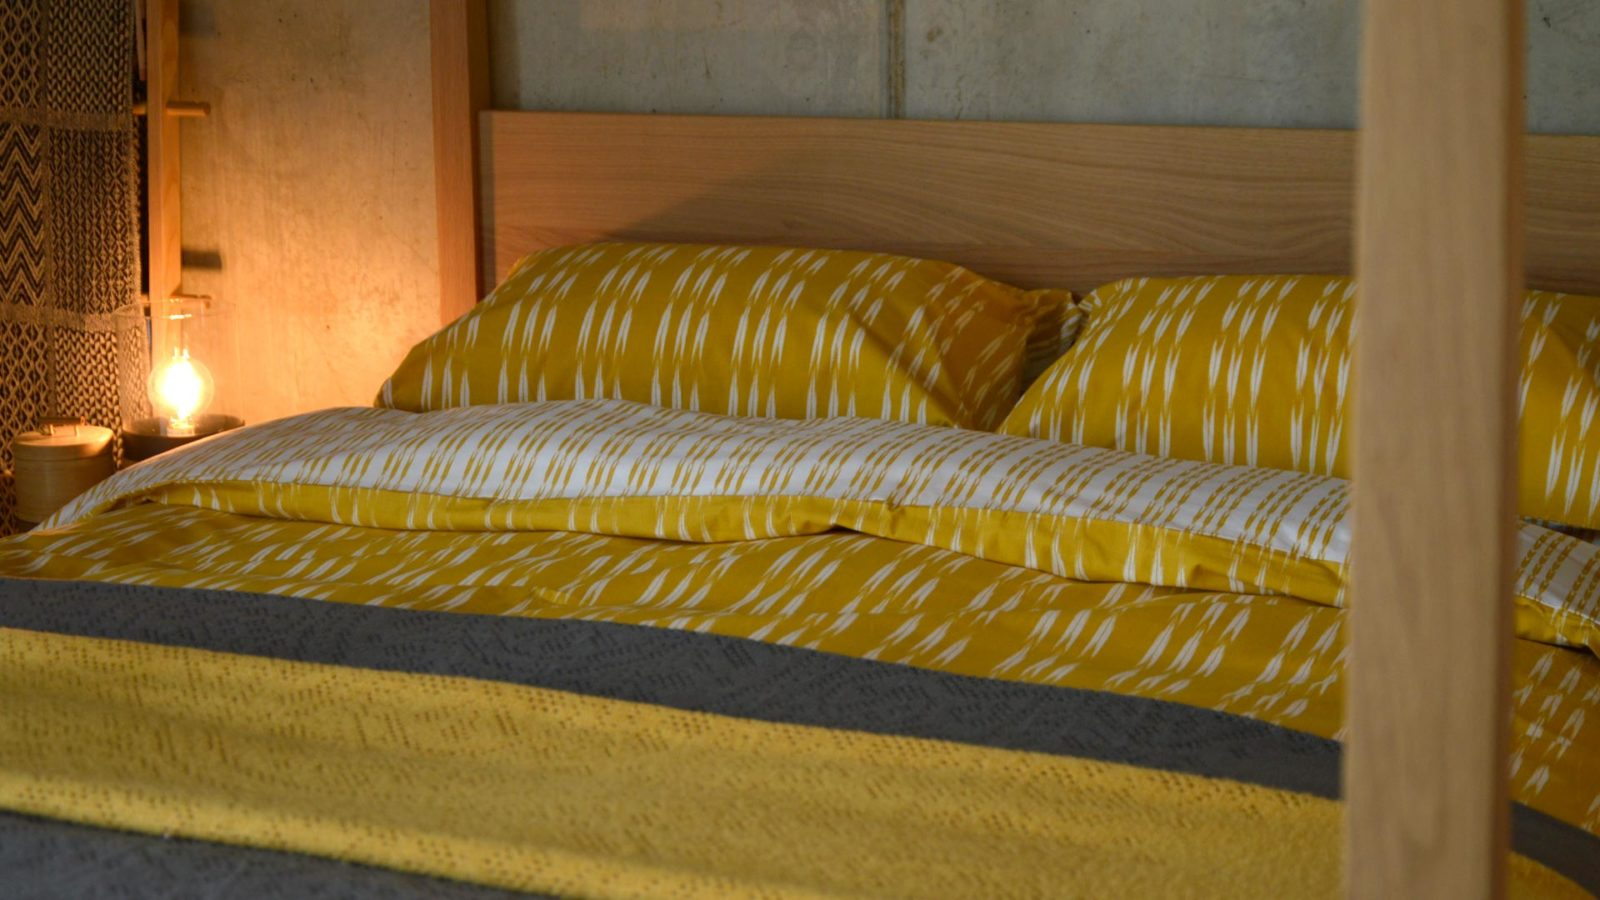 ochre-ikat-stripe-duvet-set-with-lace-throws